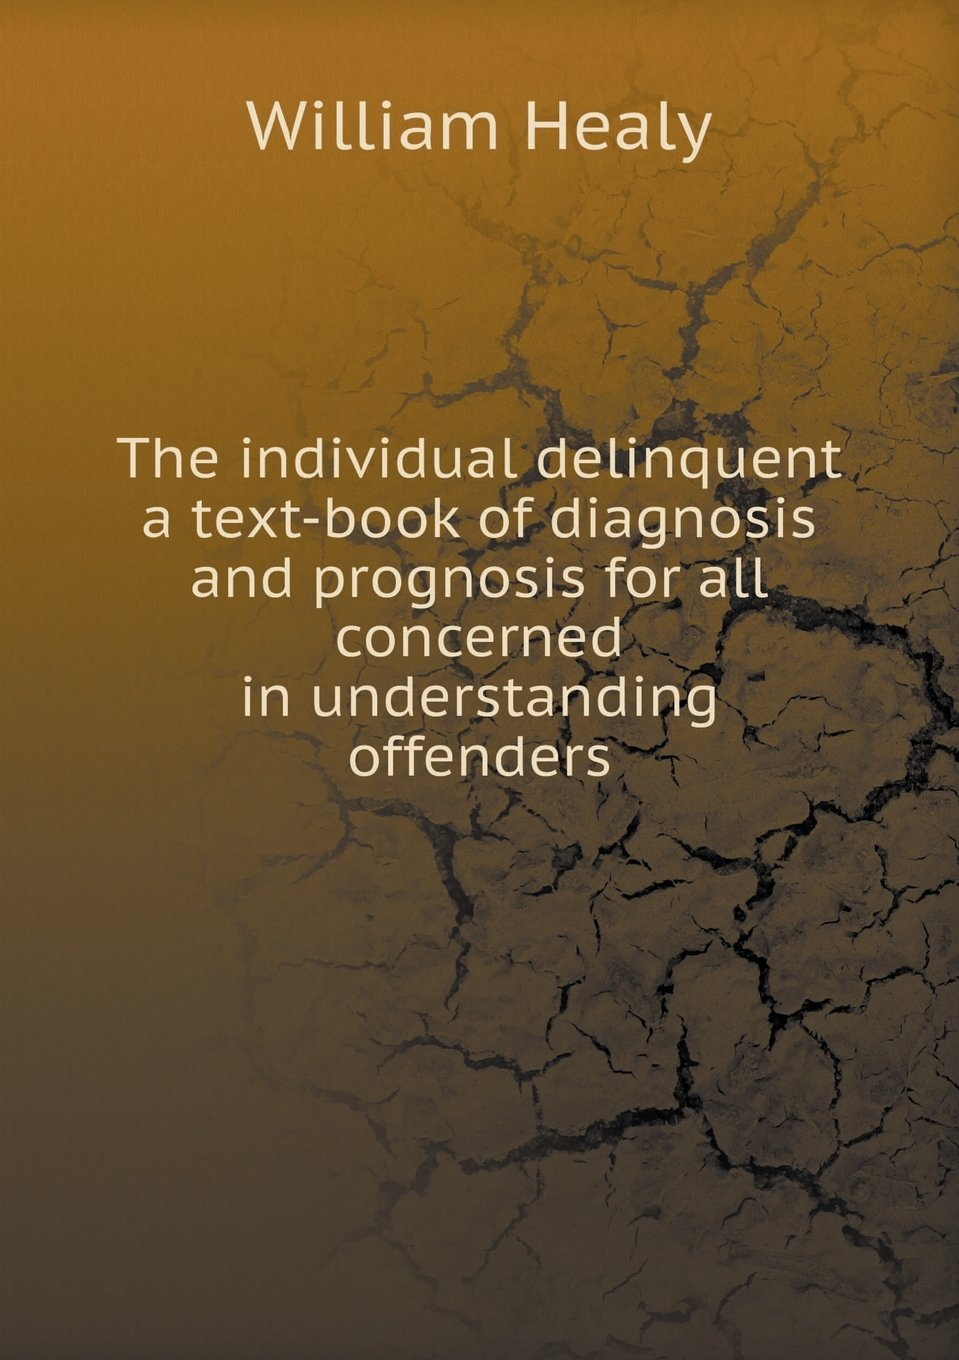 Download The individual delinquent a text-book of diagnosis and prognosis for all concerned in understanding offenders PDF